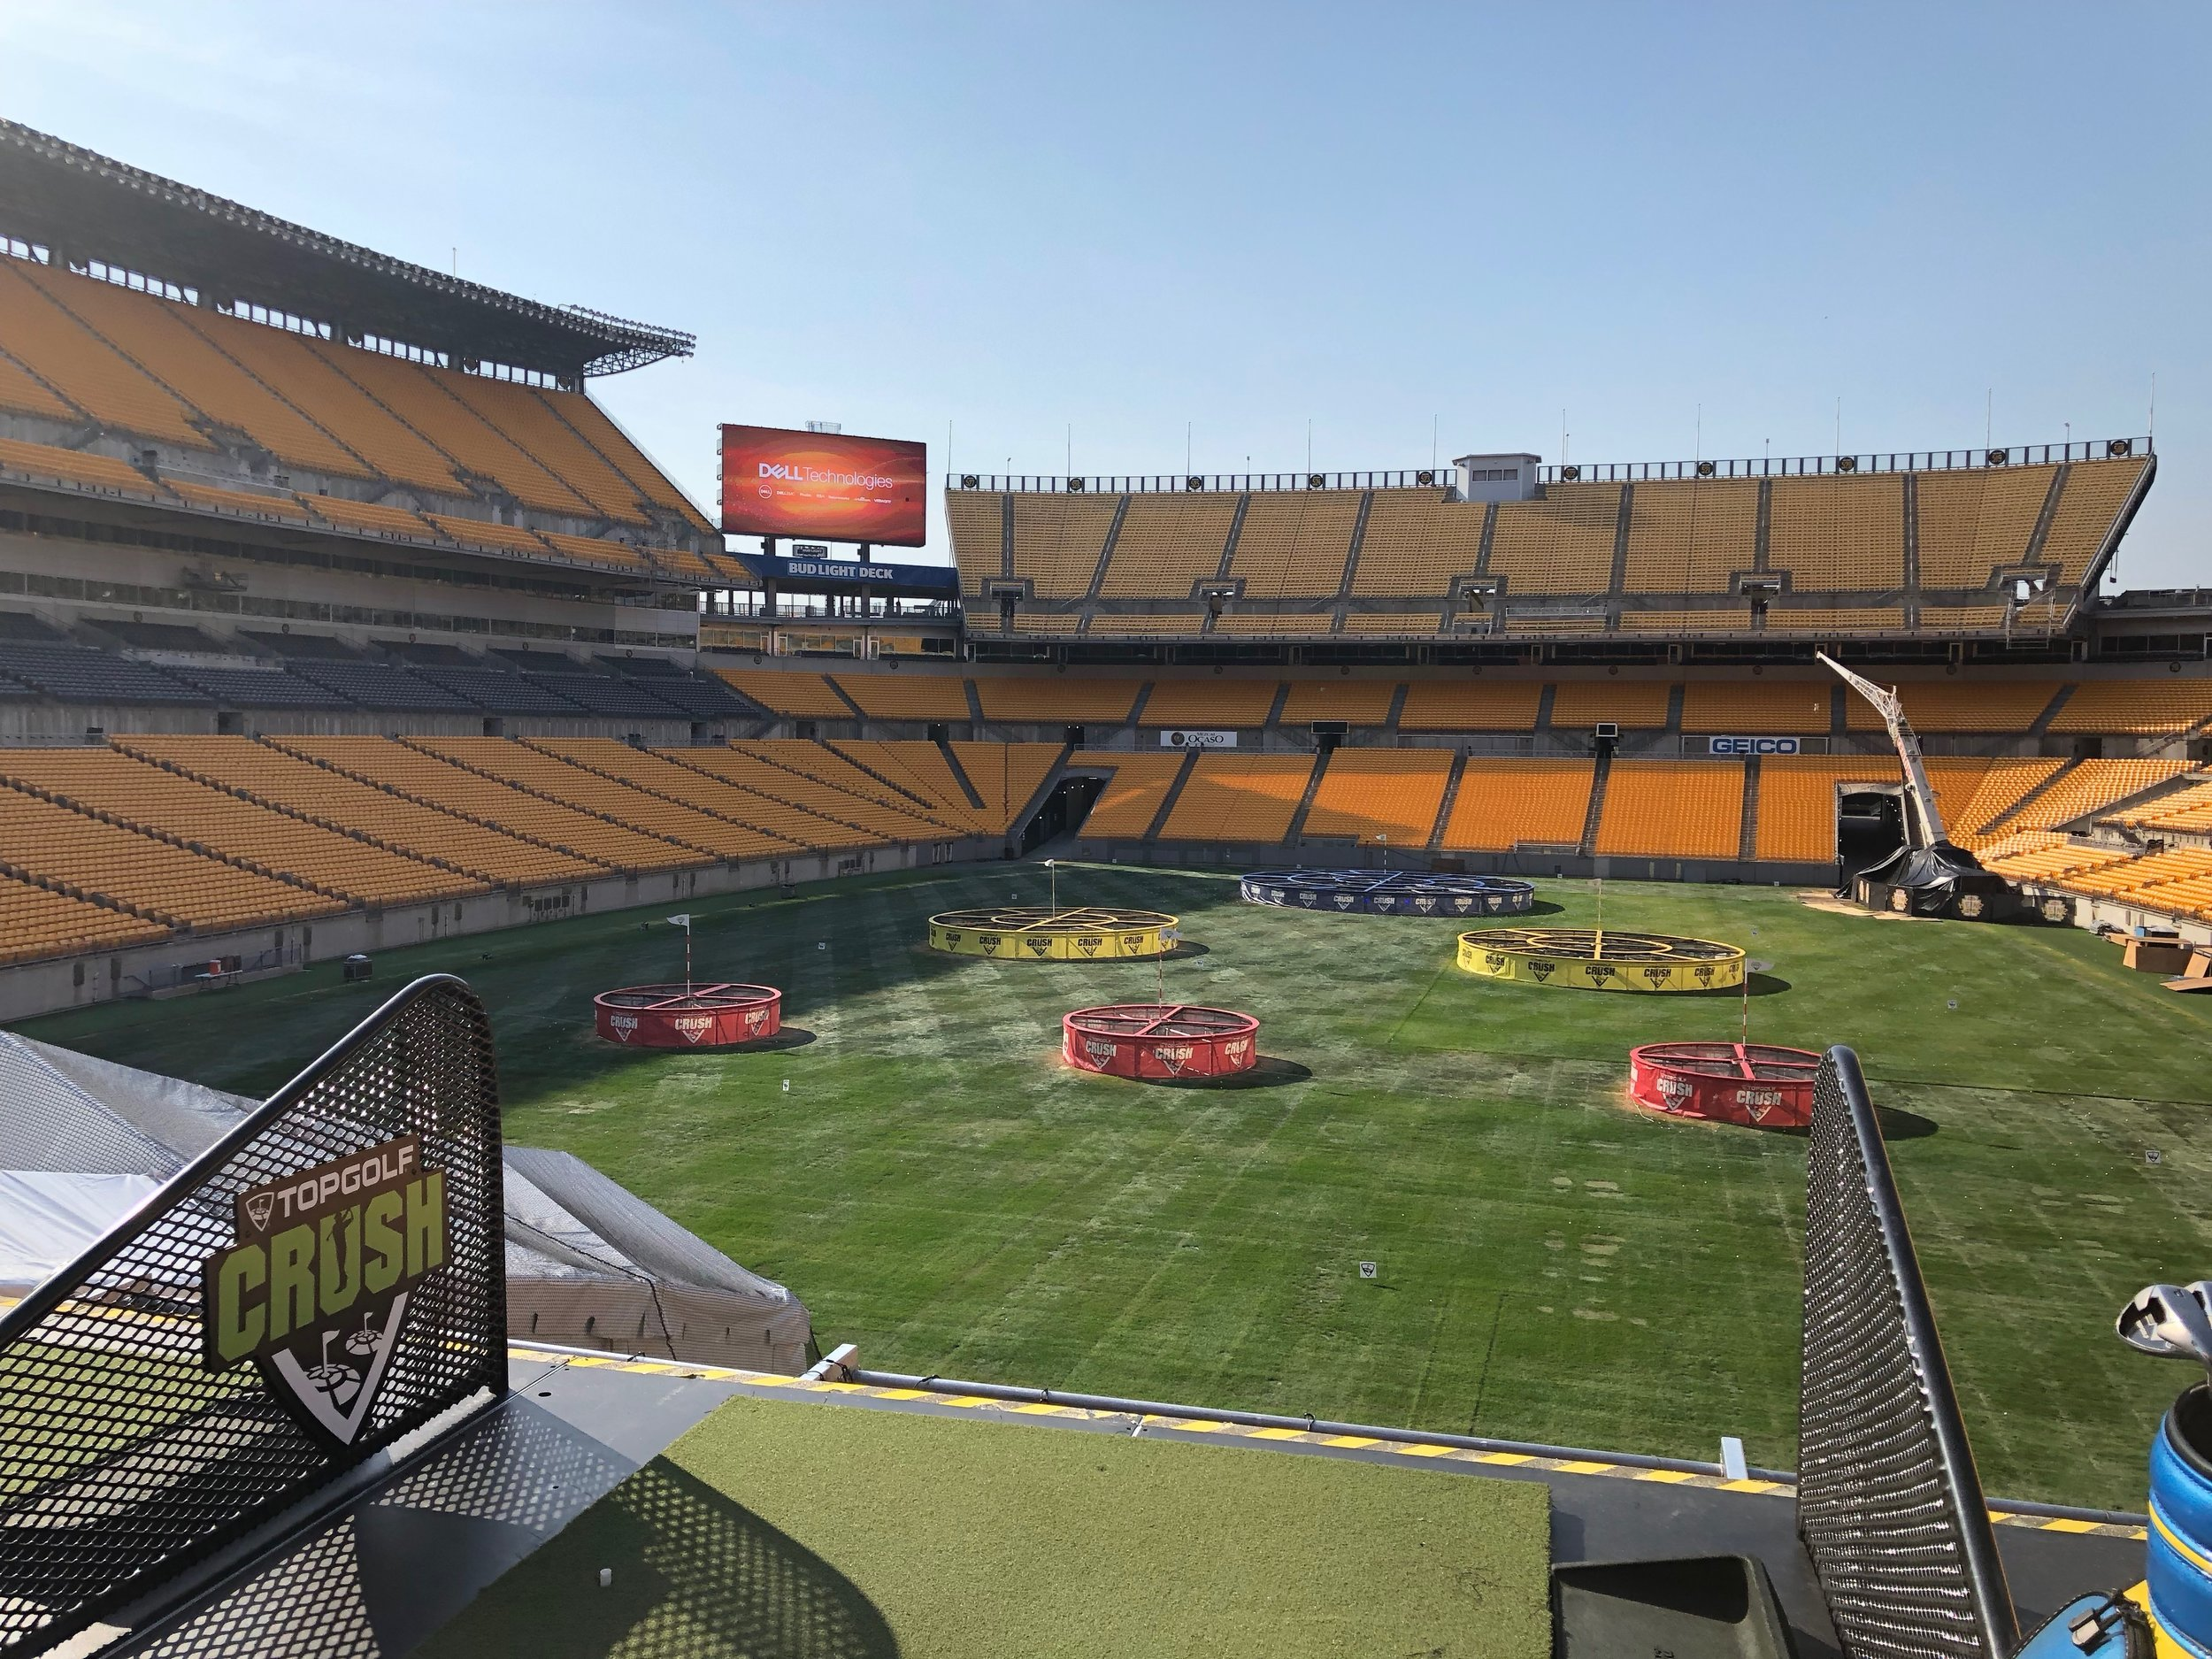 Topgolf Crush brought the iconic Topgolf experience to Heinz Field in Pittsburgh.